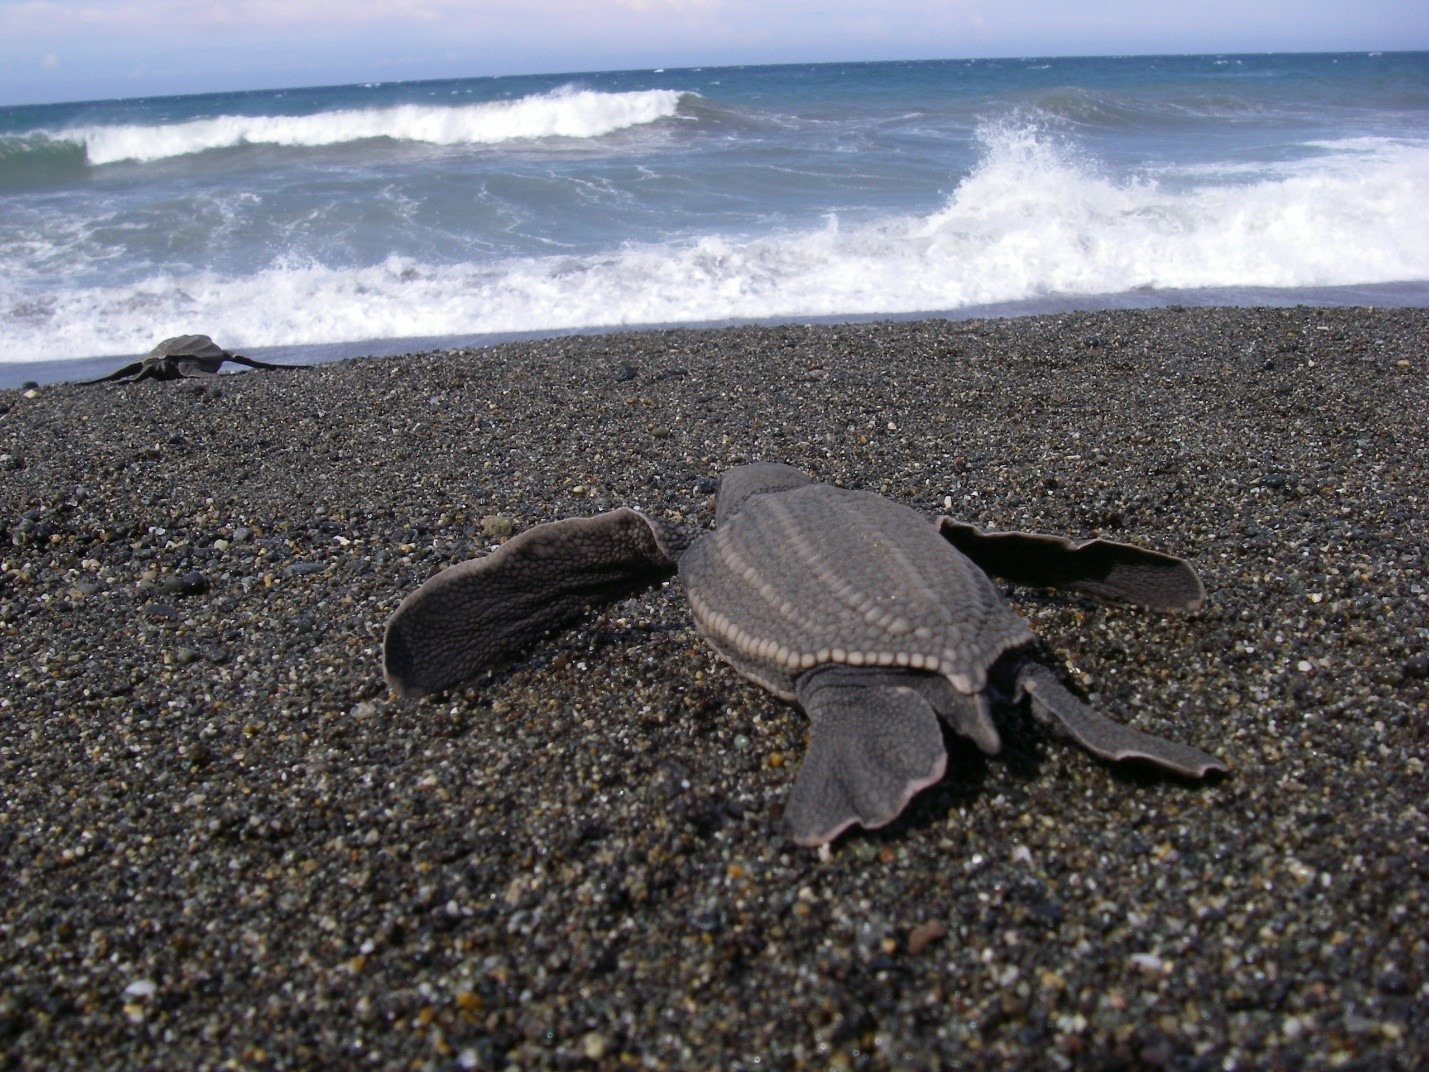 Endangered leatherback sea turtle hatchling starts its life with a journey toward the ocean.